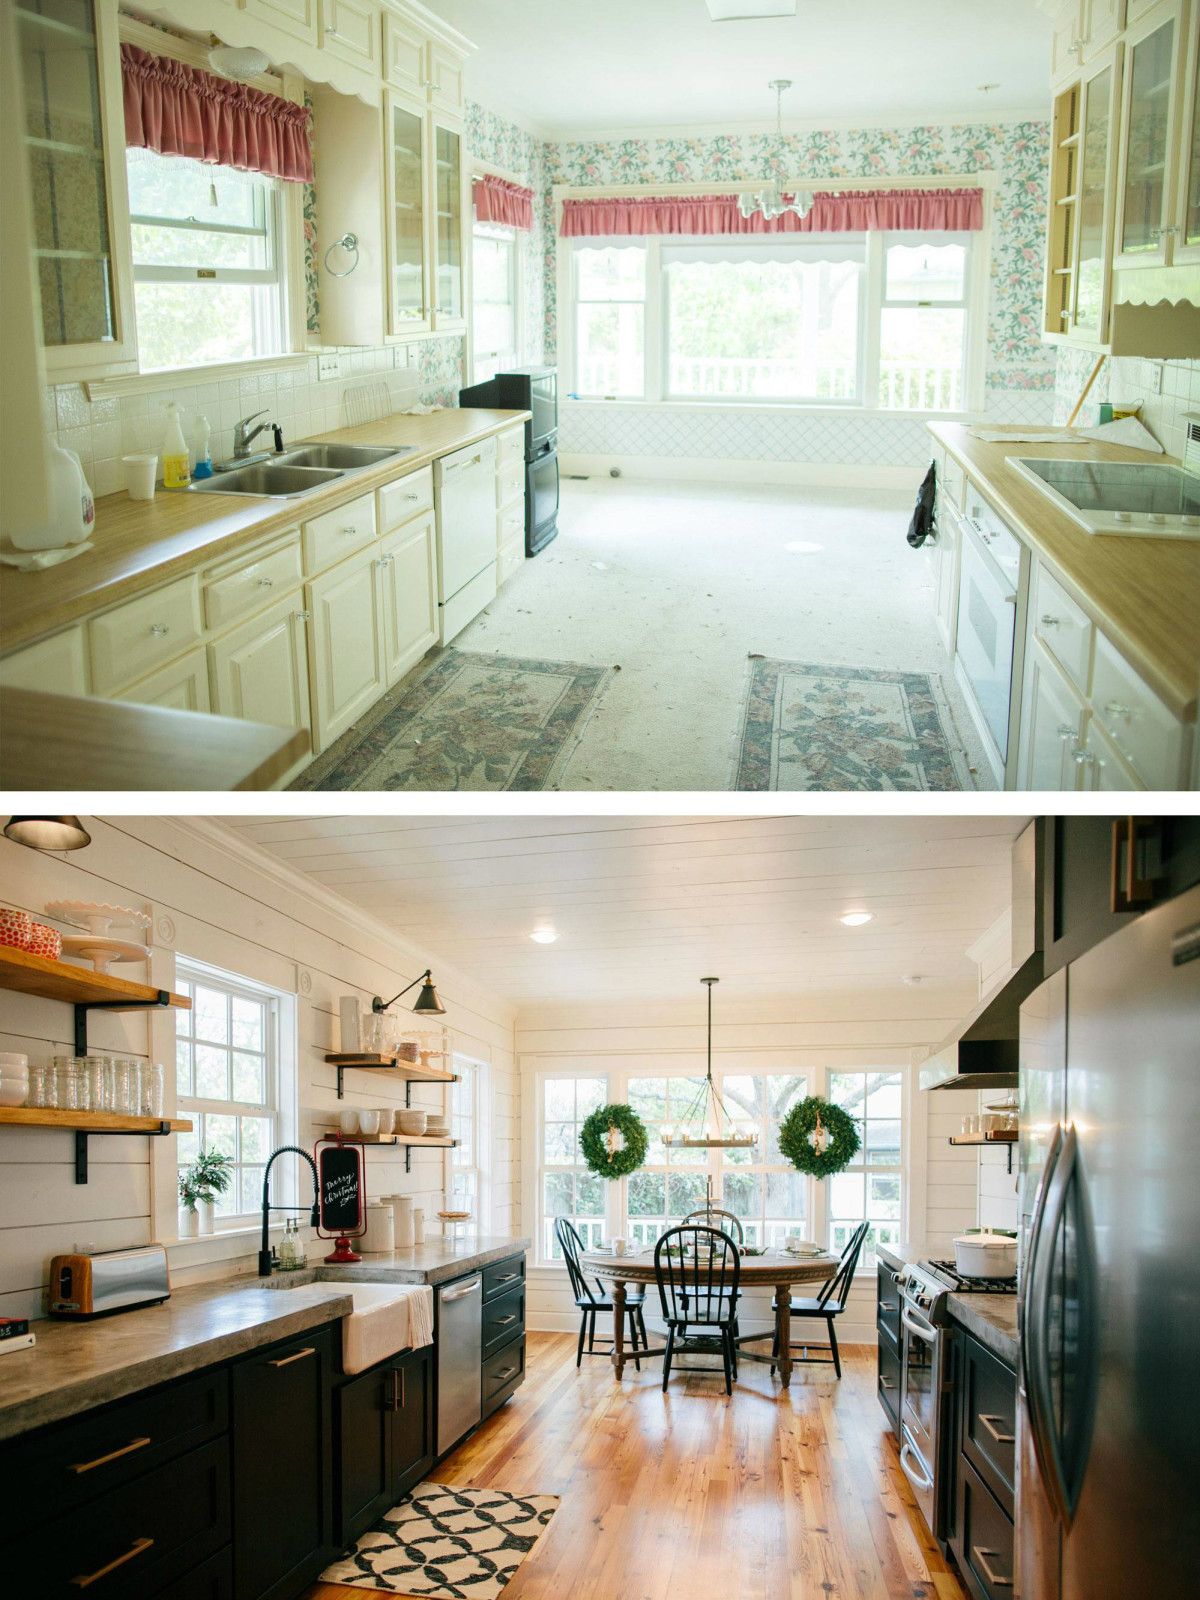 Fixer Upper couple opens cutest B&B in Texas — and demand ...